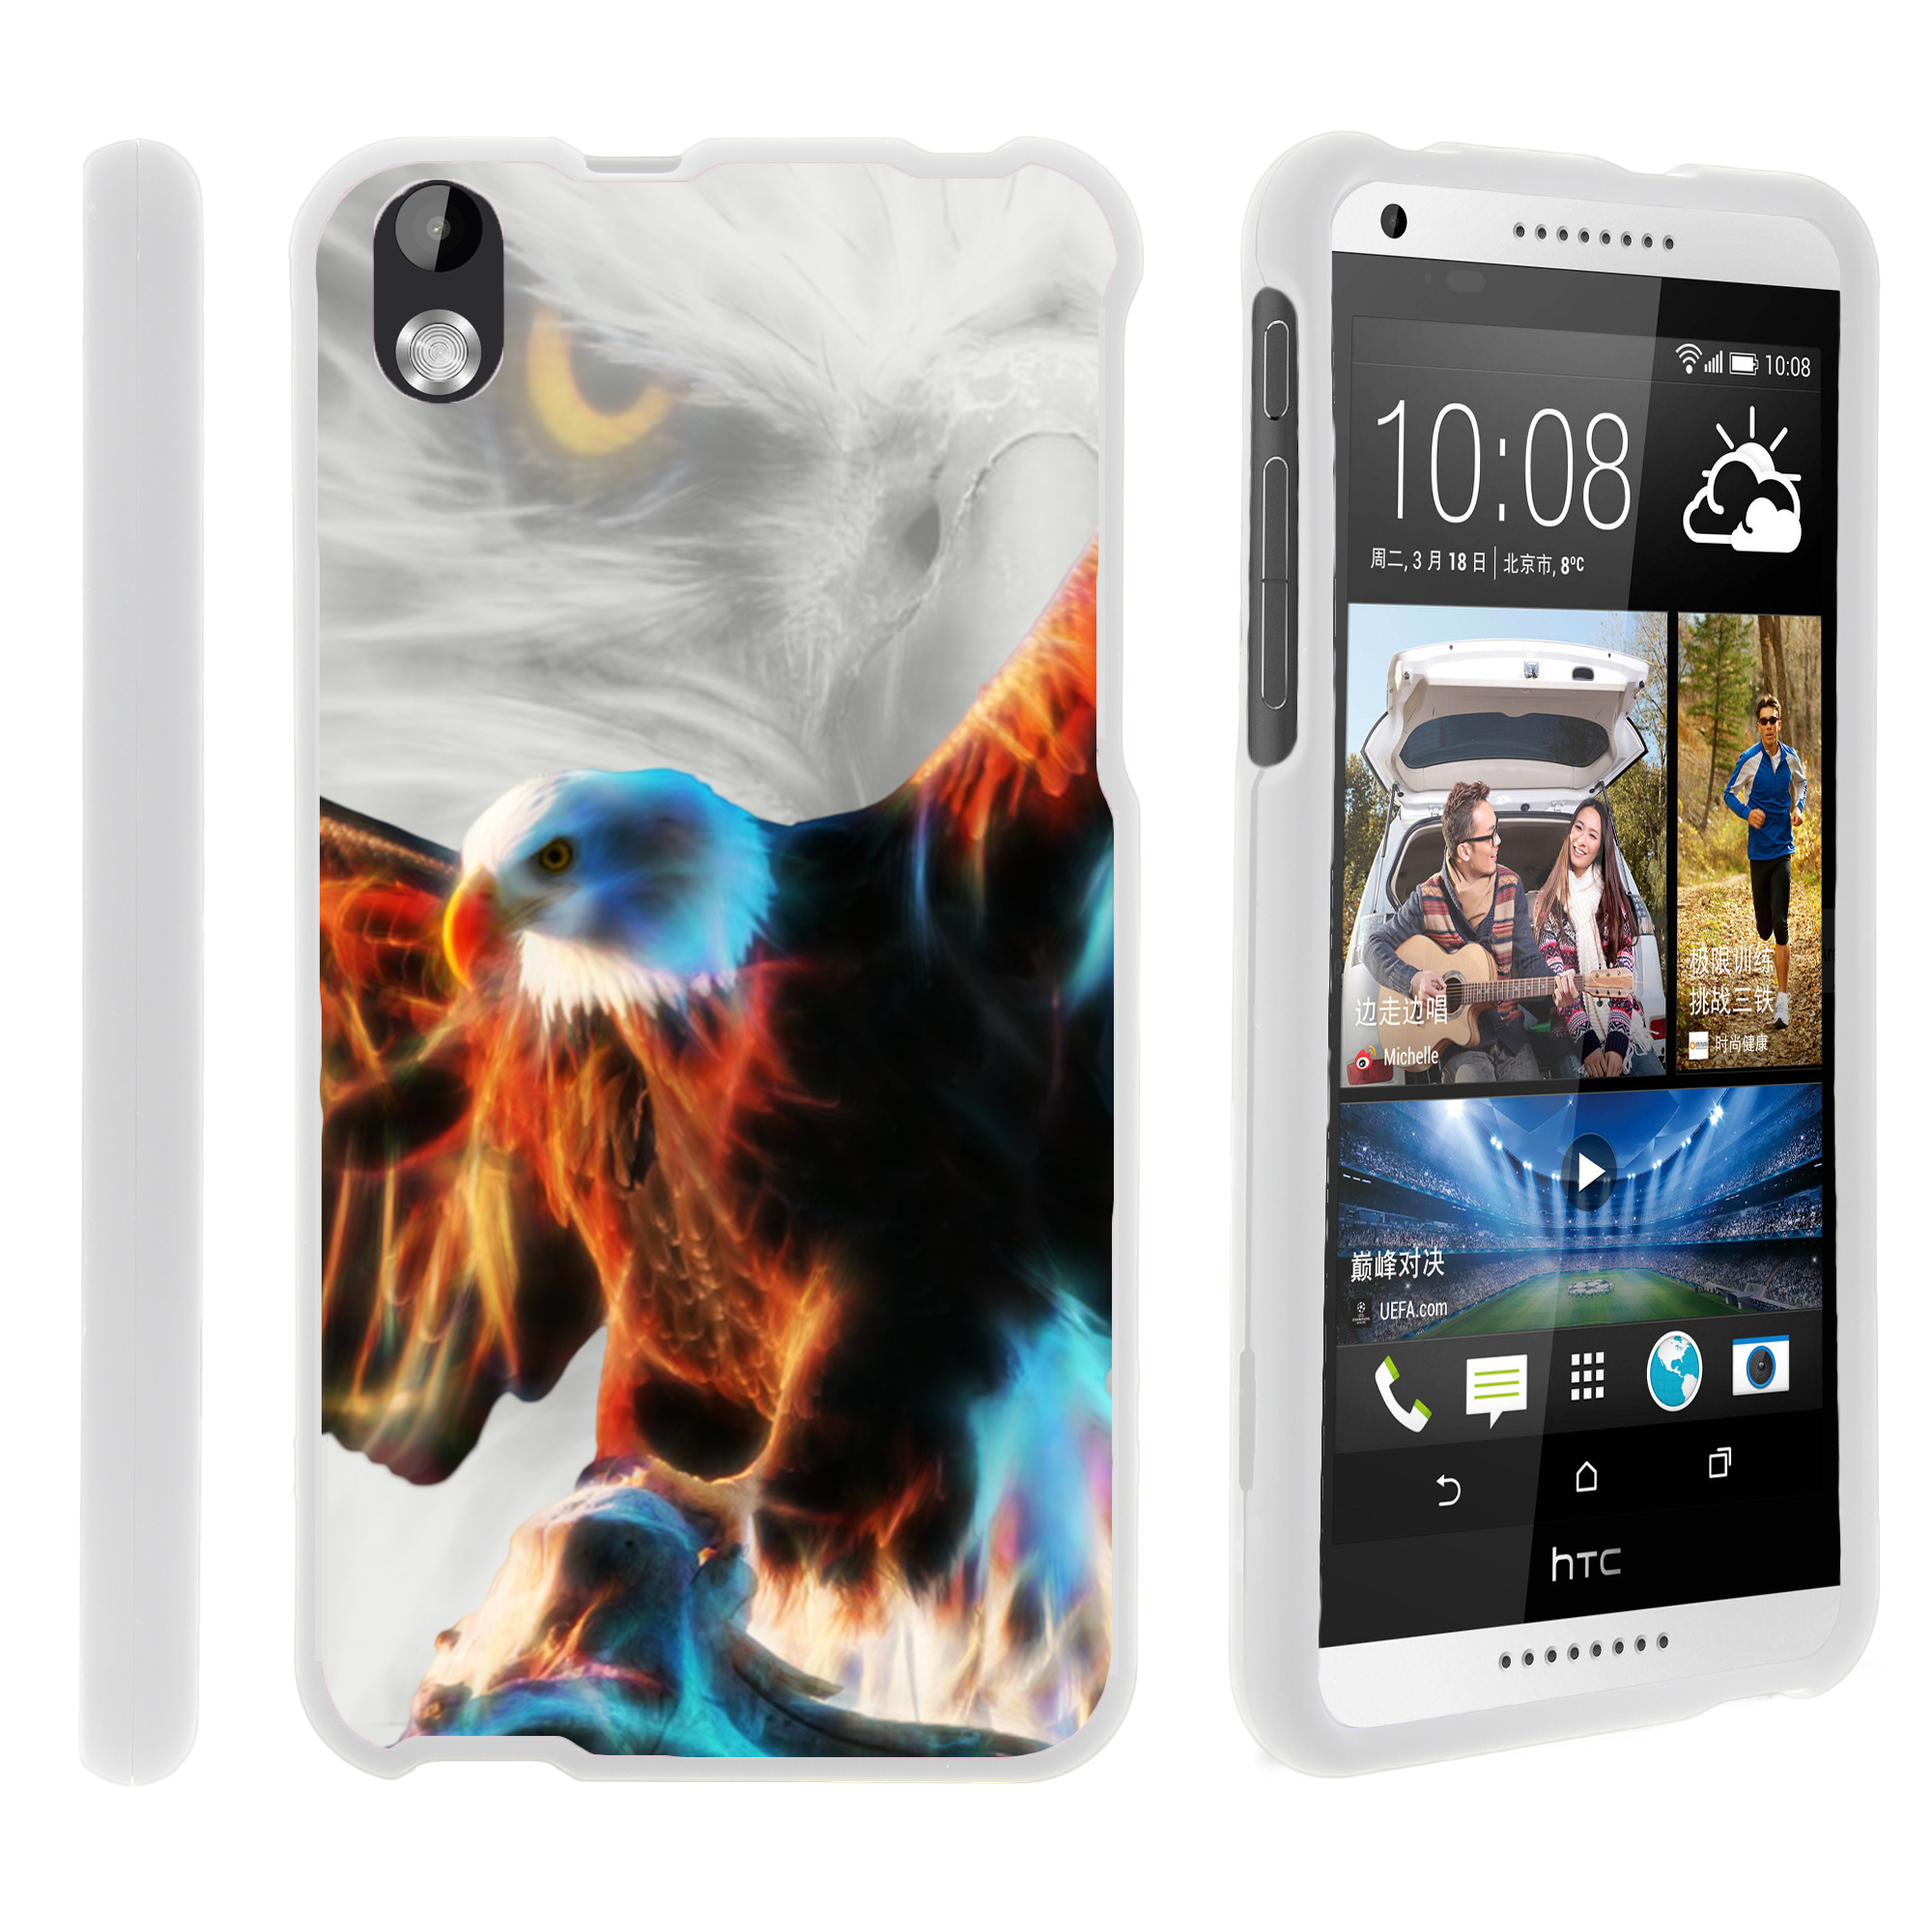 HTC Desire 816, [SNAP SHELL][White] 2 Piece Snap On Rubberized Hard White Plastic Cell Phone Case with Exclusive Art -  Blazing Eagle